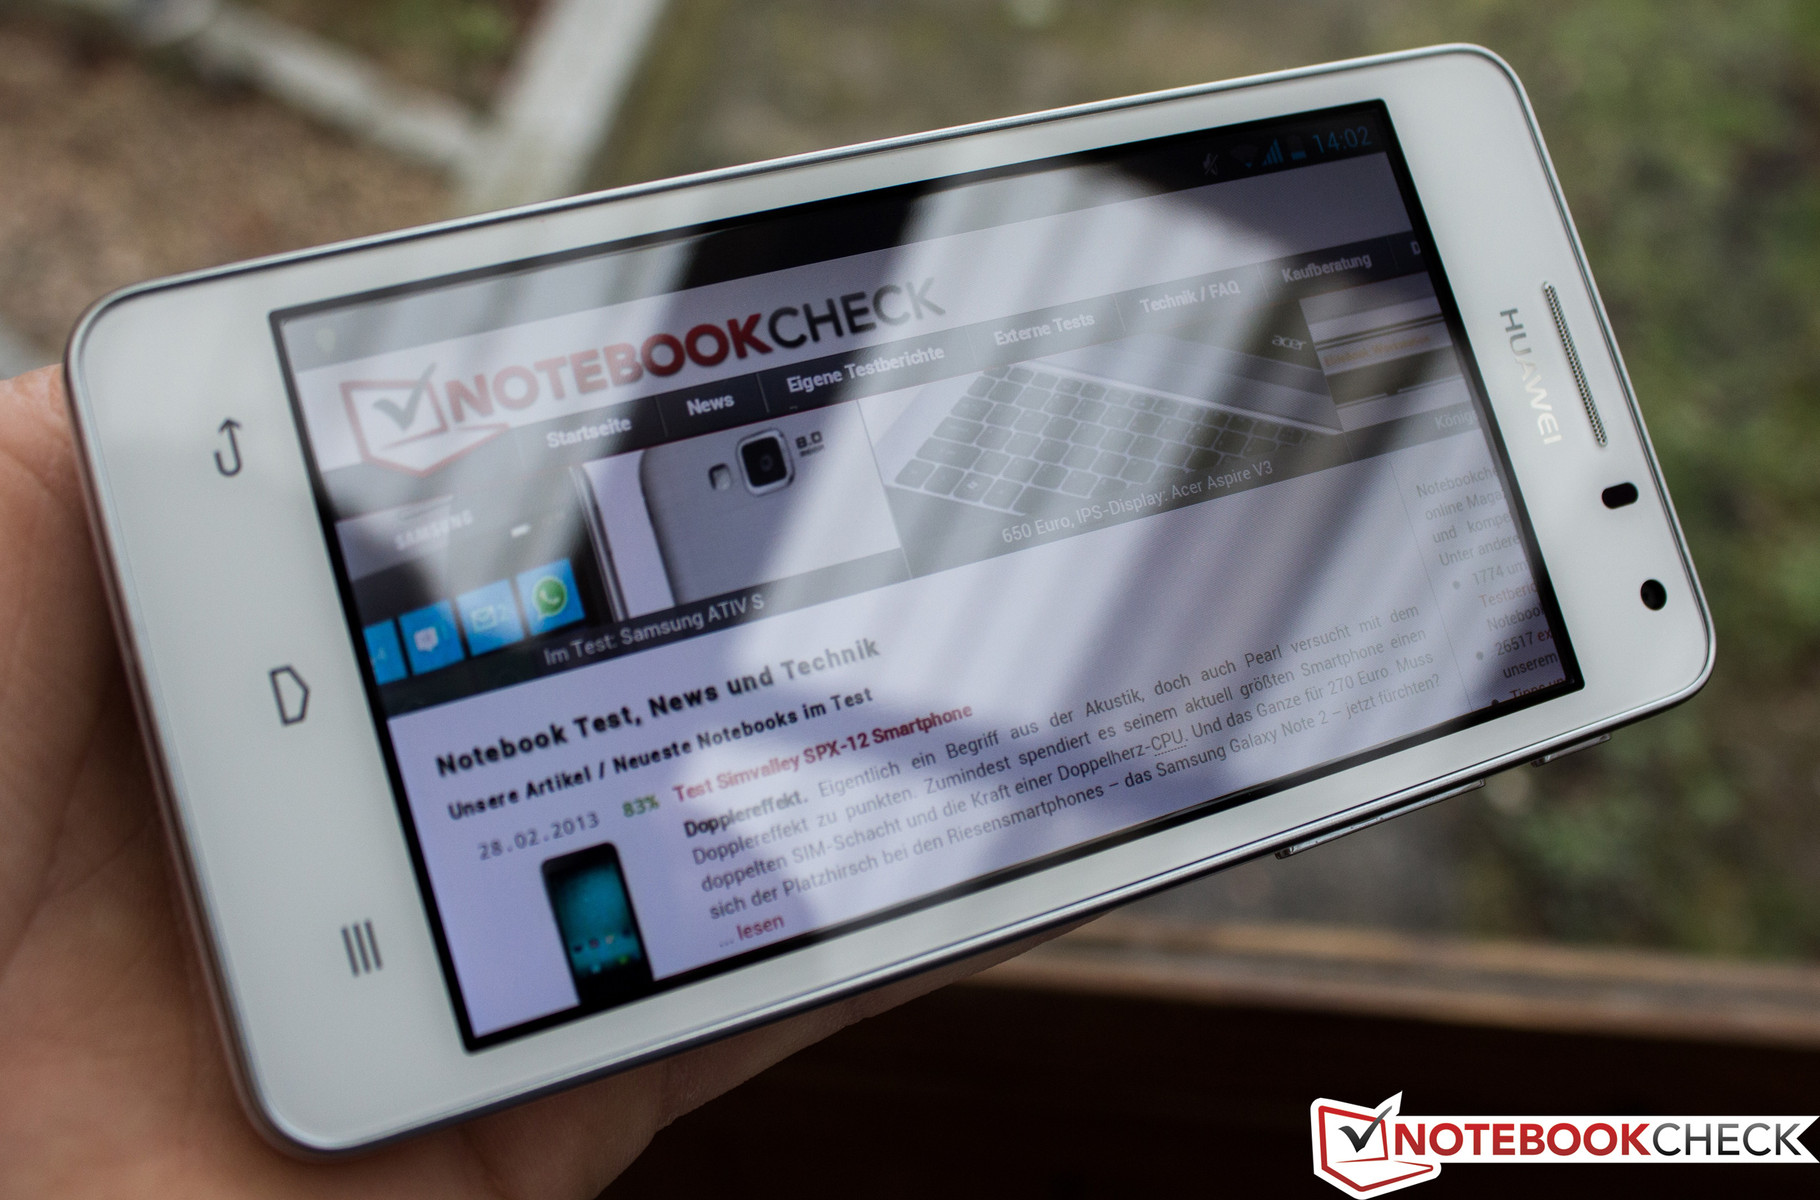 Review Huawei Ascend G600 Smartphone Reviews Samsungampnbsp Galaxy Note 4 Outdoors Reflections Are Very Noticeable